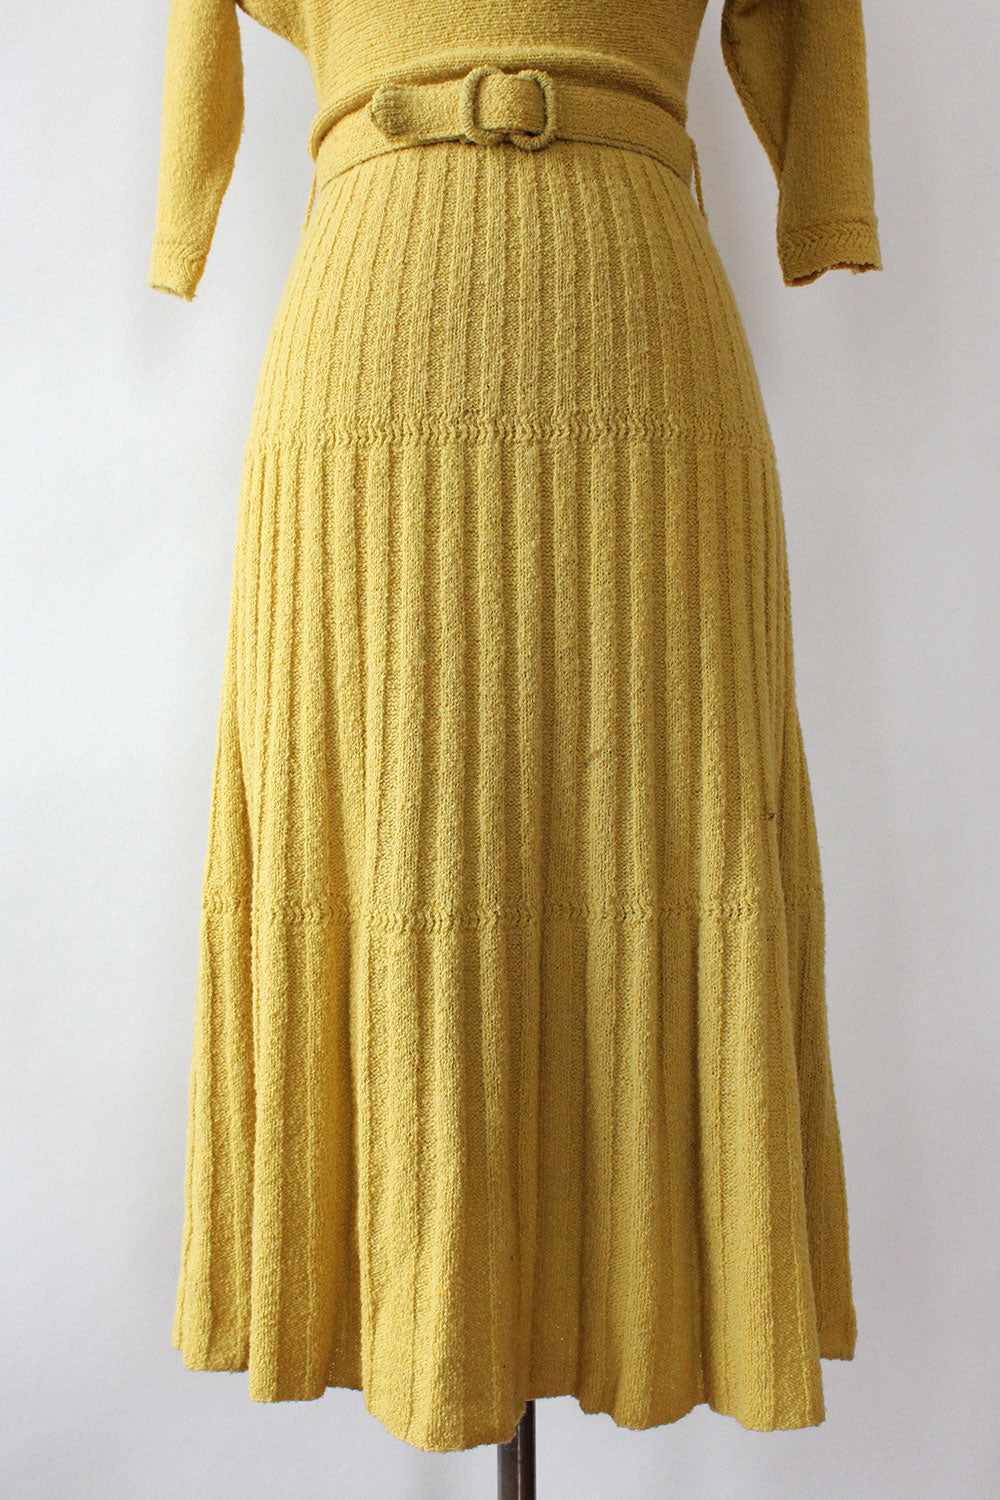 Chartreuse 40s Knit Dress XS-M